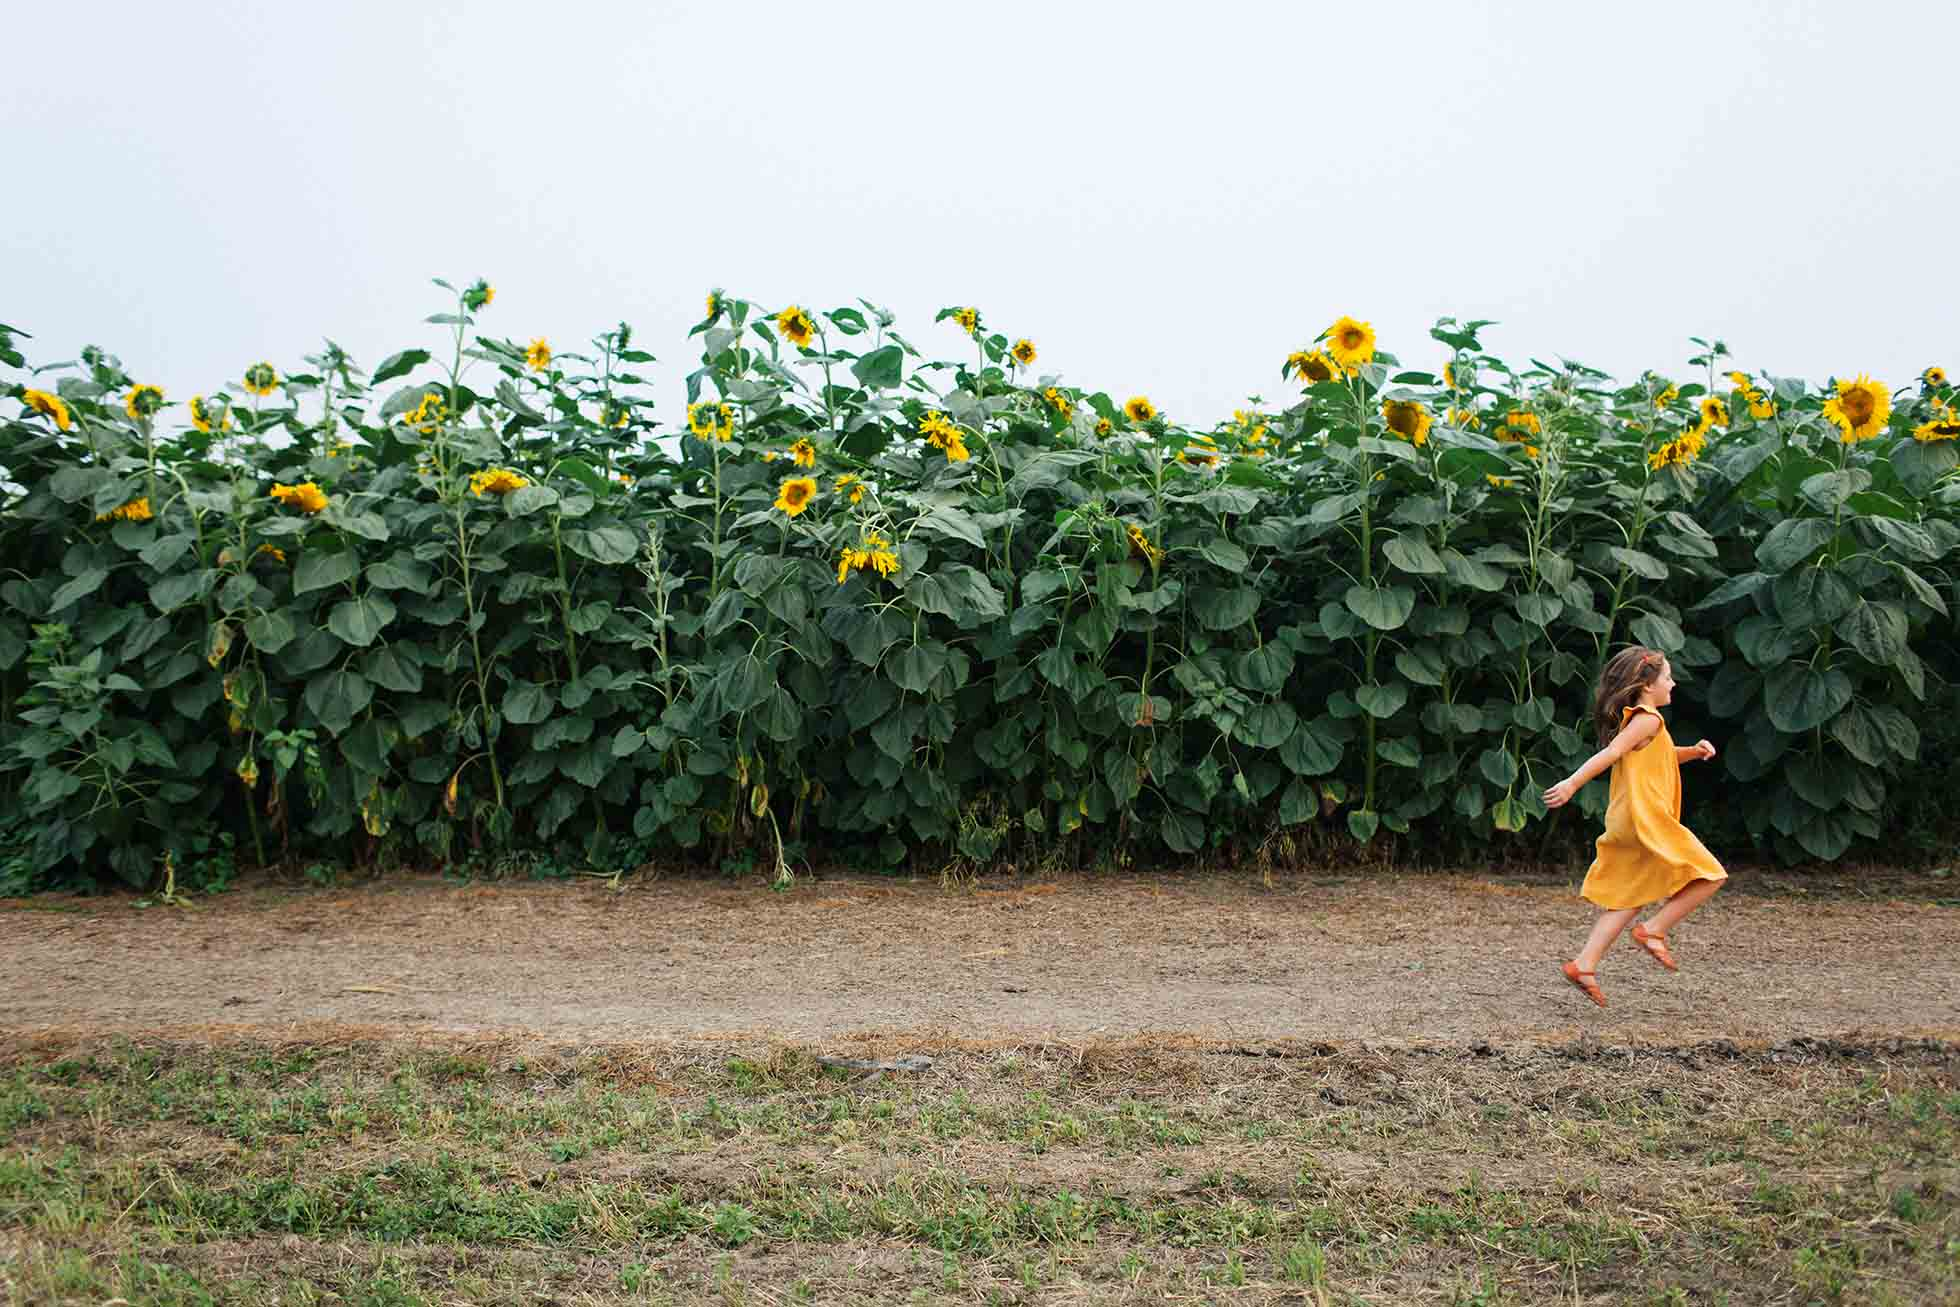 Little girls skips past a field of sunflowers in a matching yellow dress.